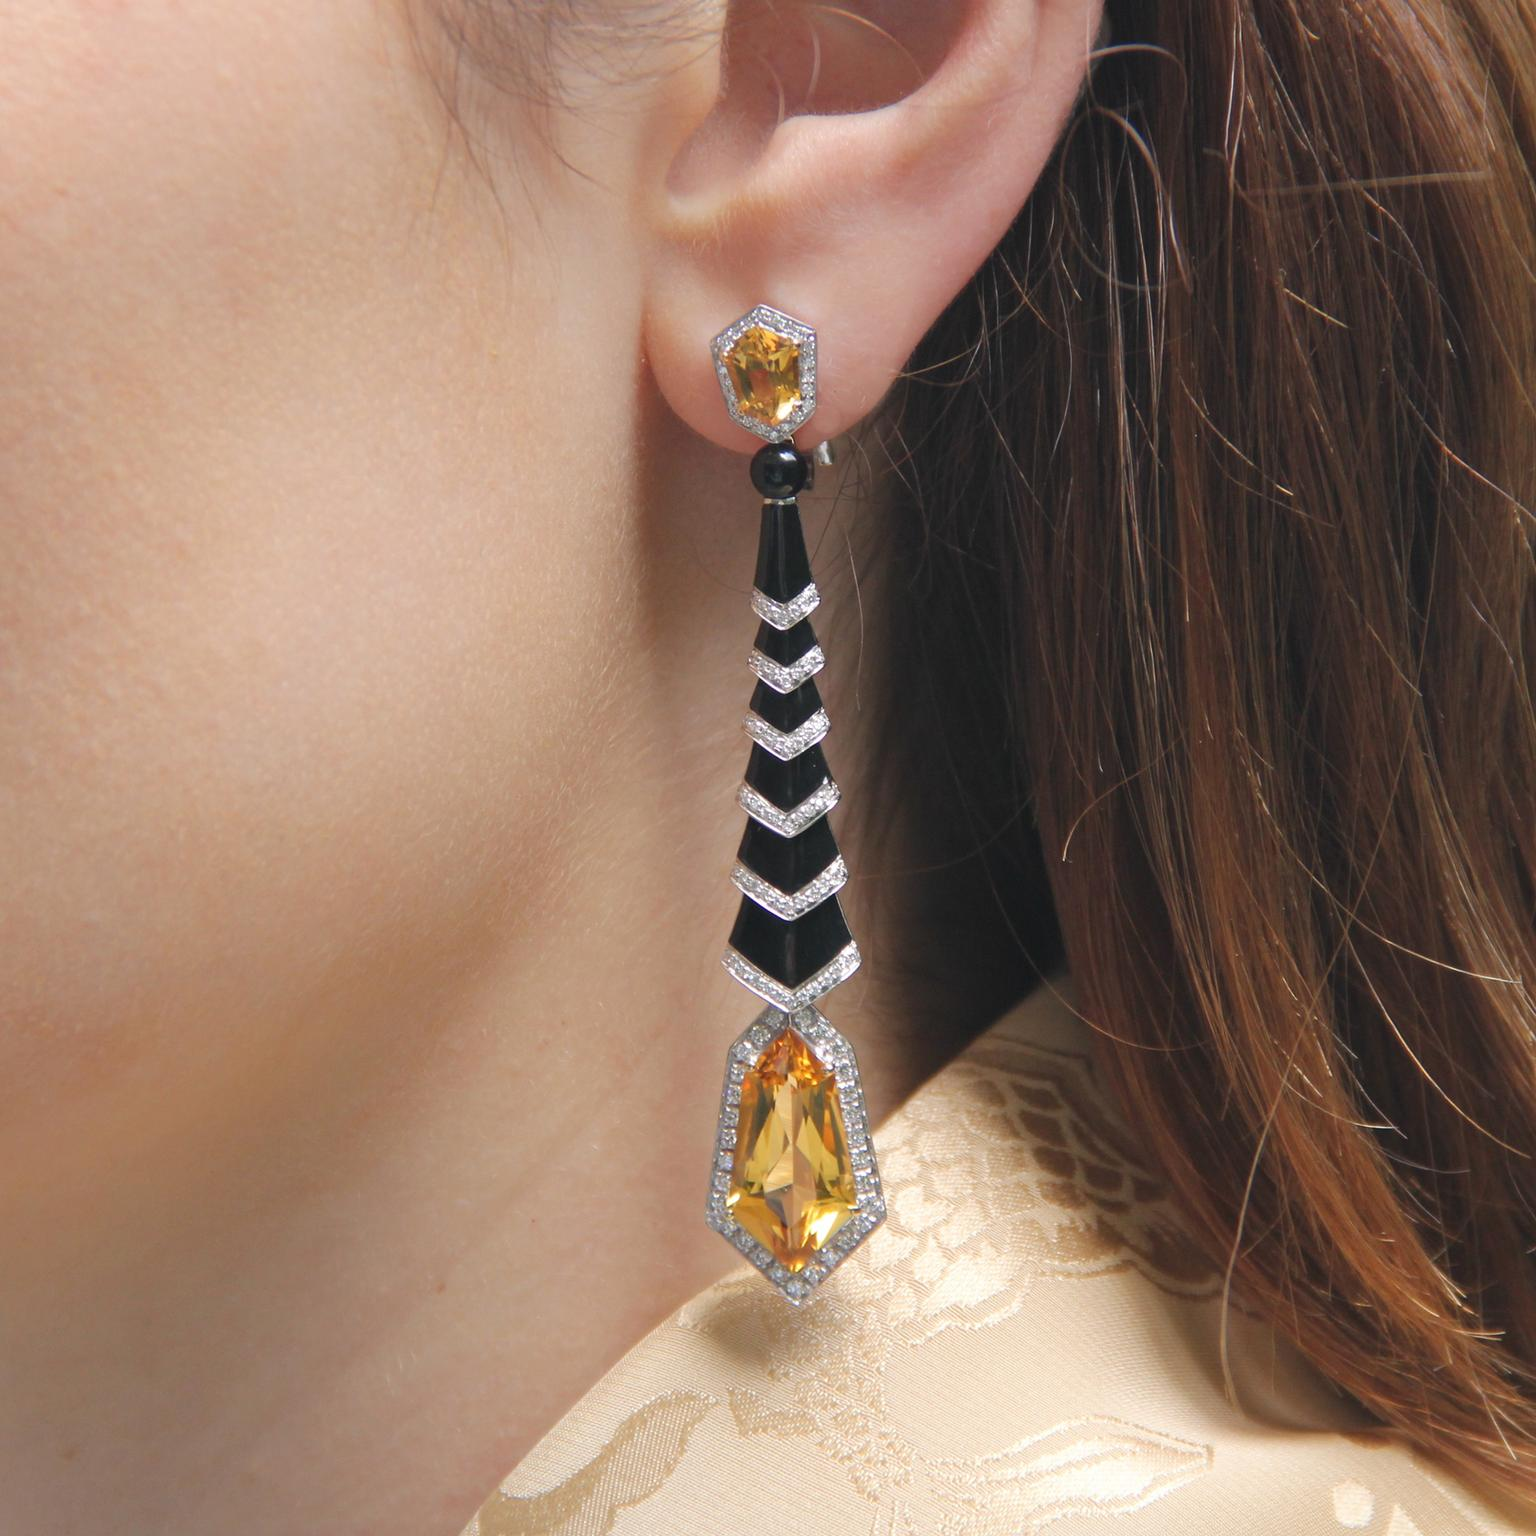 Avakian Gatsby earrings in black onyx and citrines